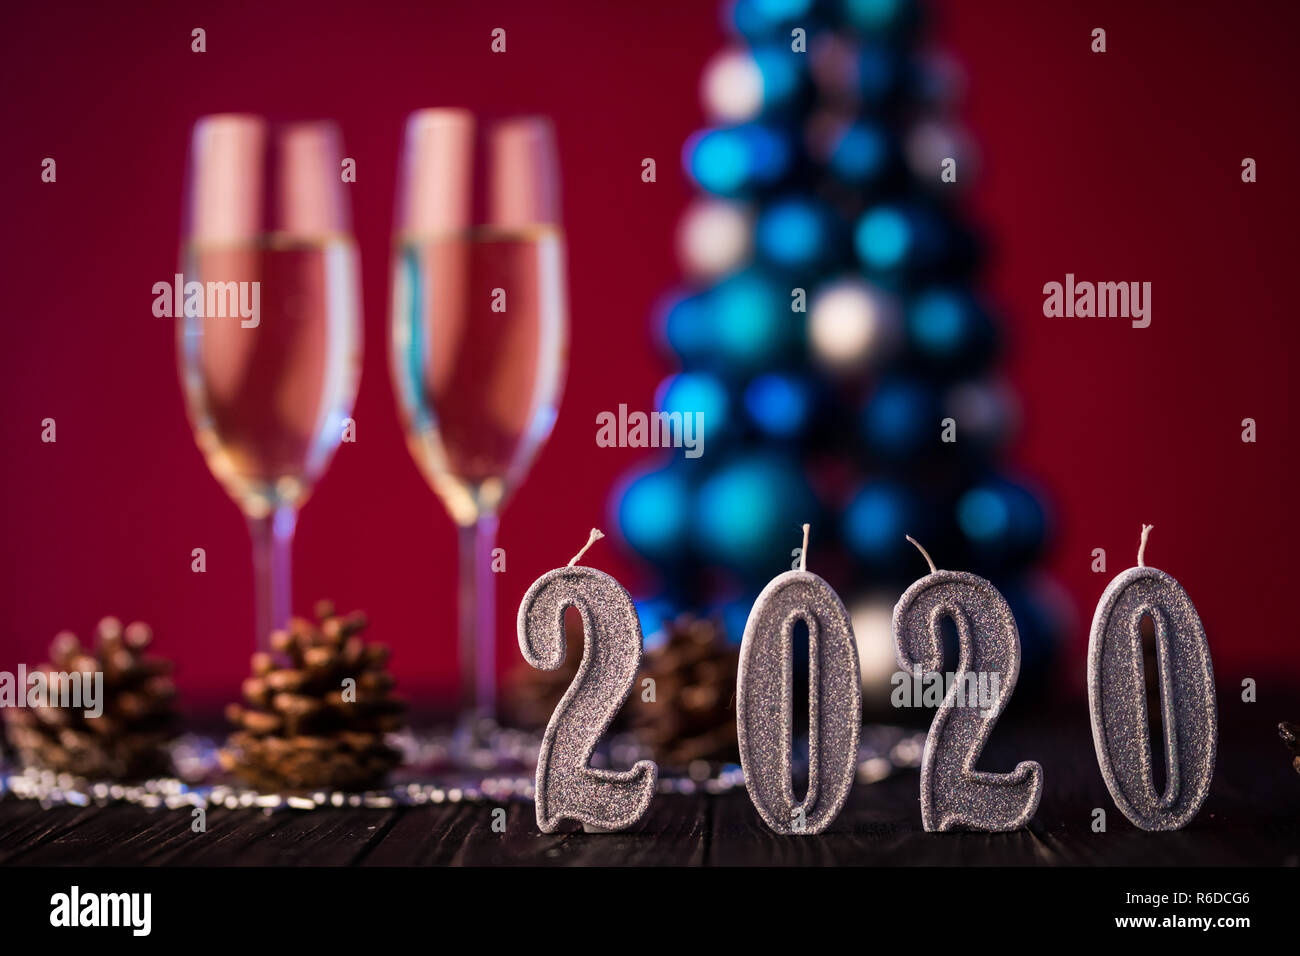 Christmas Viewing 2020 Christmas Day Viewing Figures 2020 Ram   Rhwtfg.newyearhappy.site